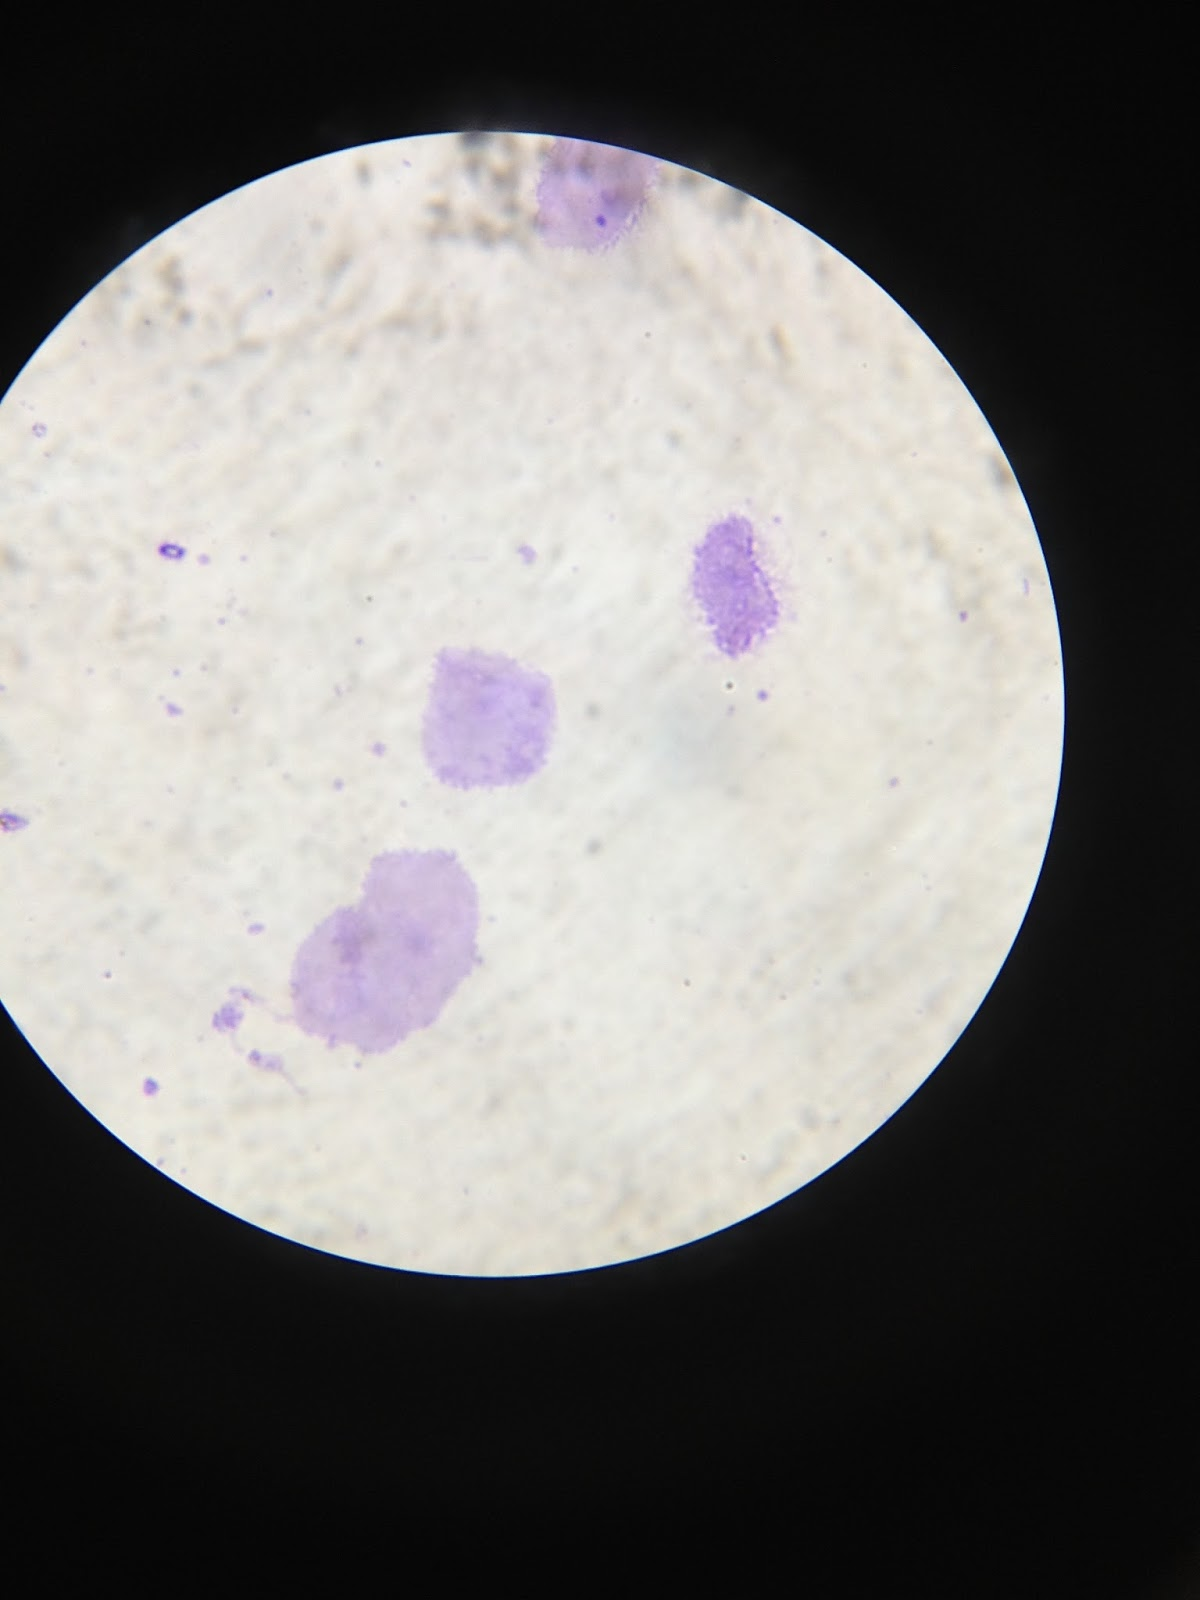 Galleries Related  Human Cheek Cell 400x   Human Cheek Cell 100x  Human Cheek Cell 100x